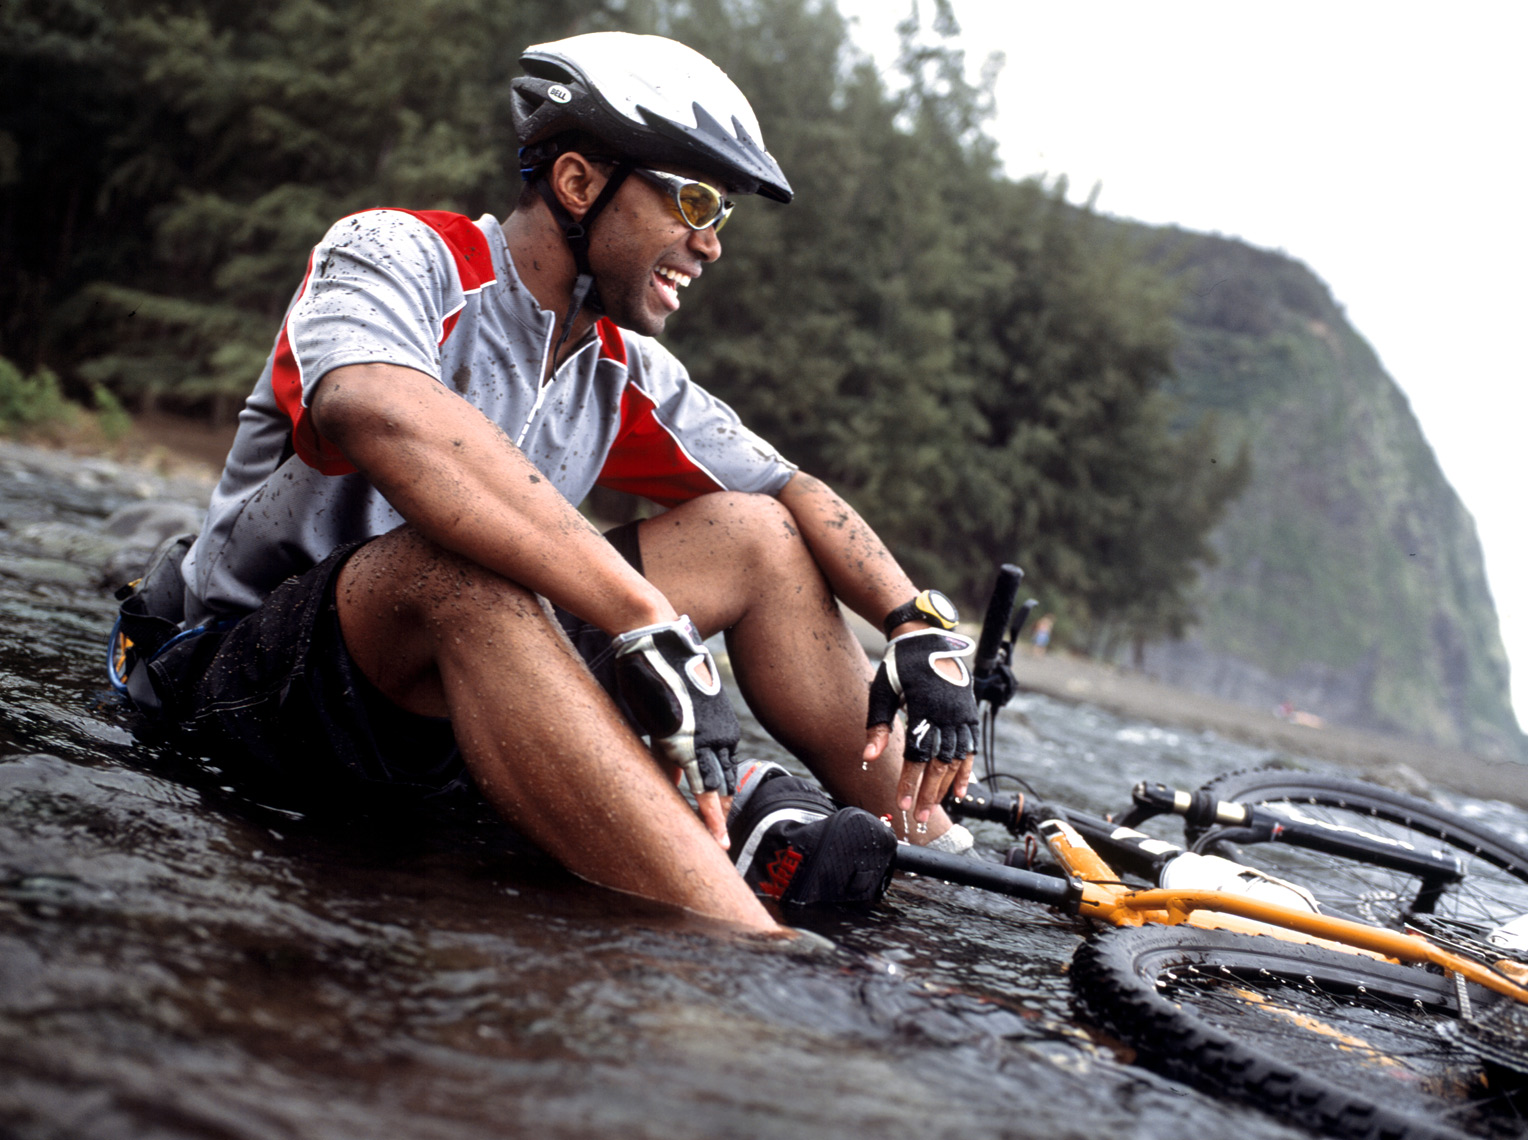 Fory-in-Stream-Bike.jpg